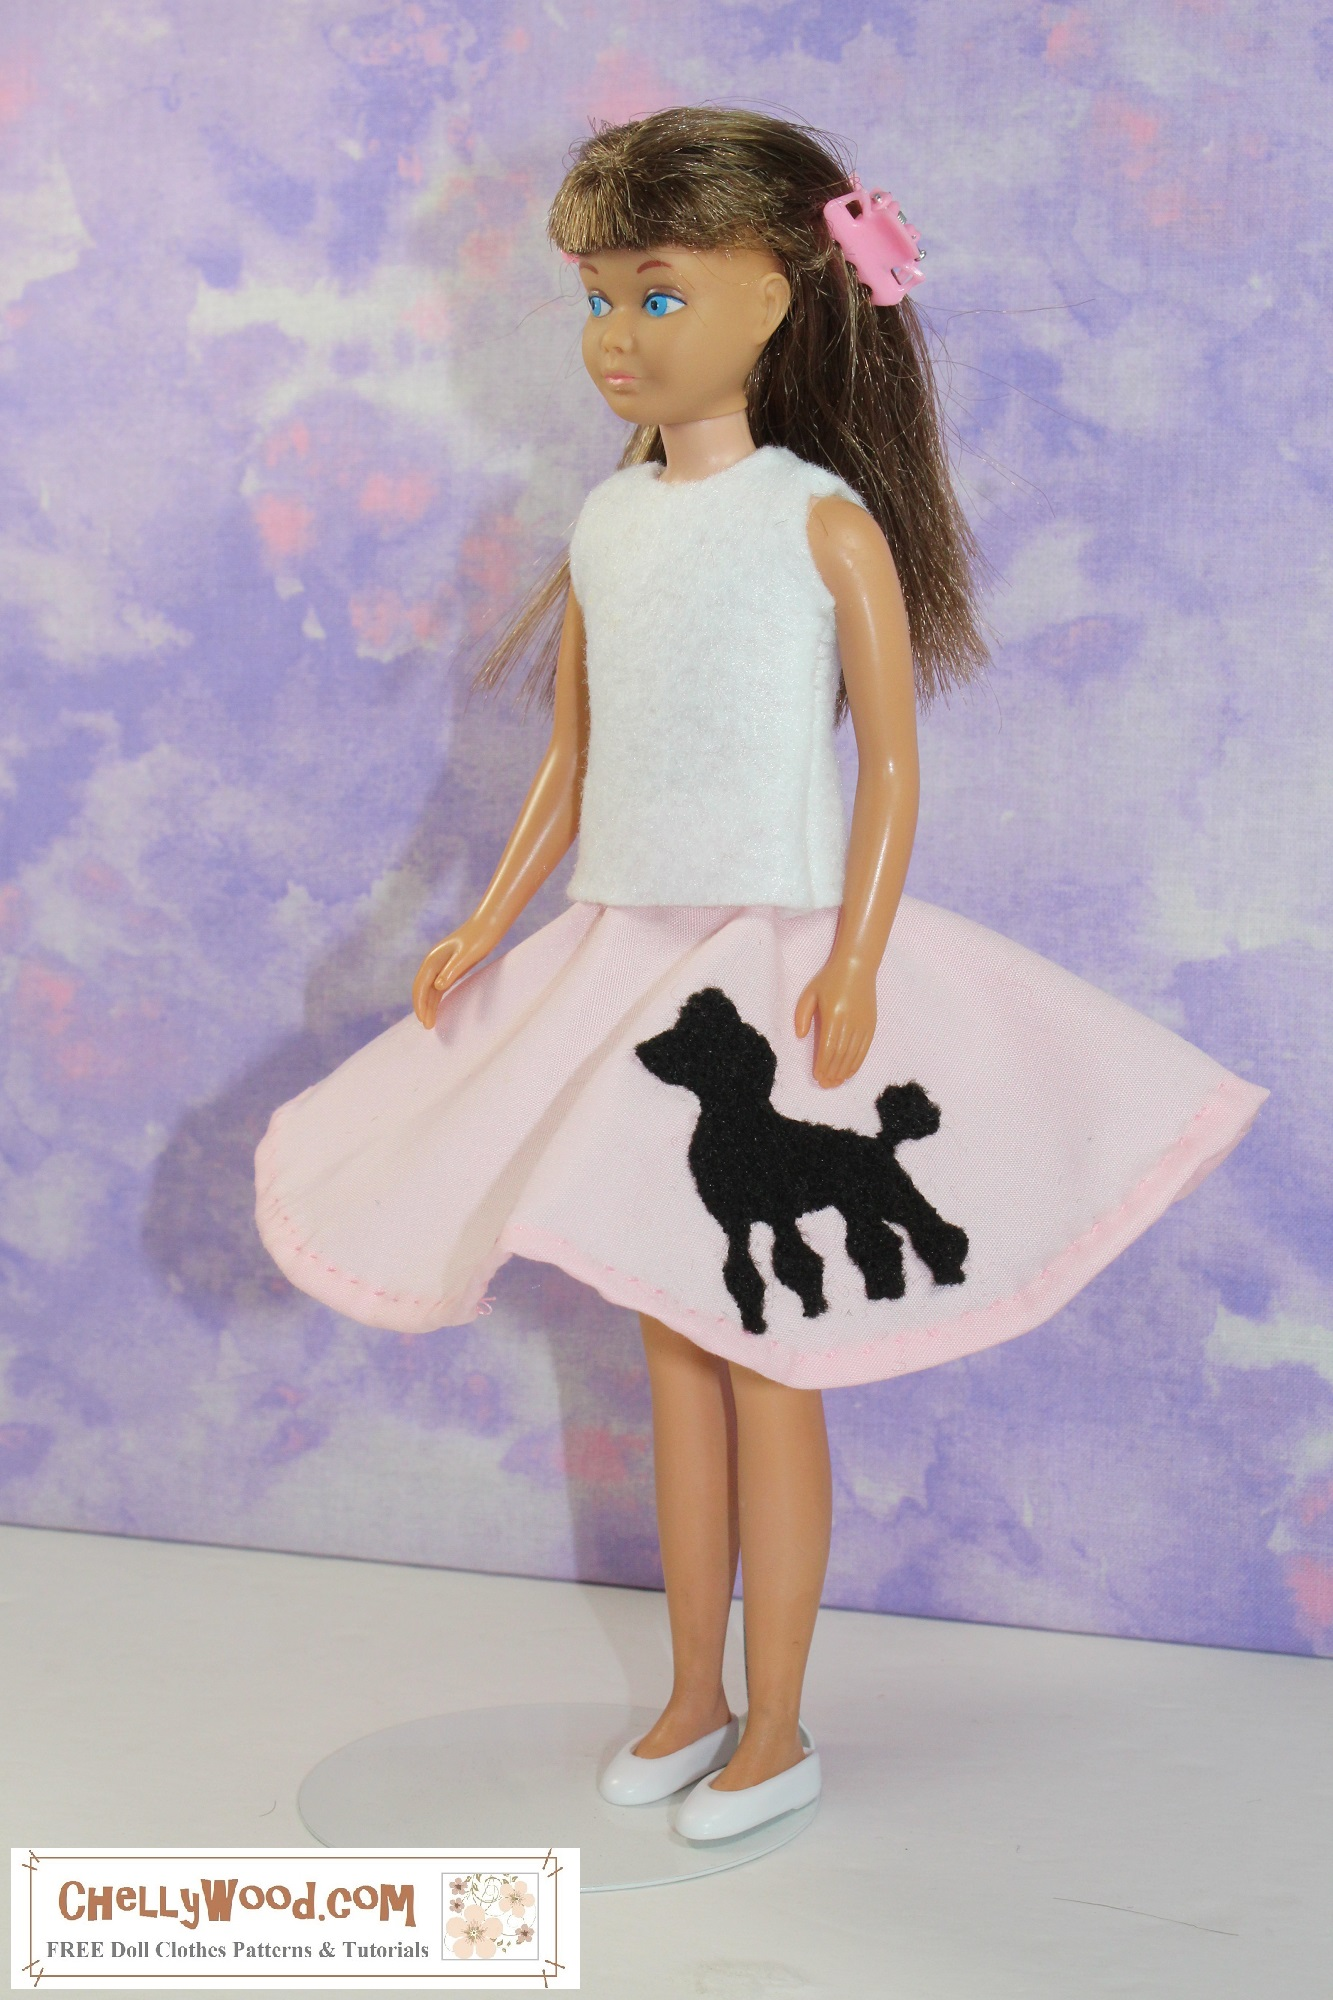 """The image shows a Mattel vintage Skipper doll wearing handmade doll clothes that include a felt sleeveless shirt and a pink poodle skirt that flares outward, as if vintage Skipper is spinning around. The overlay says, """"ChellyWood.com: free doll clothes patterns and tutorials,"""" reminding you to visit ChellyWood.com for your free printable sewing patterns for making doll clothes to fit dolls of many shapes and all different sizes. Would you like to make today's pink poodle skirt with a felt poodle patch sewn onto the skirt, along with the easy-to-sew felt sleeveless top? Please click on the link in the caption, and it will take you to the page where you can download and print the free printable PDF sewing patterns for making this outfit."""